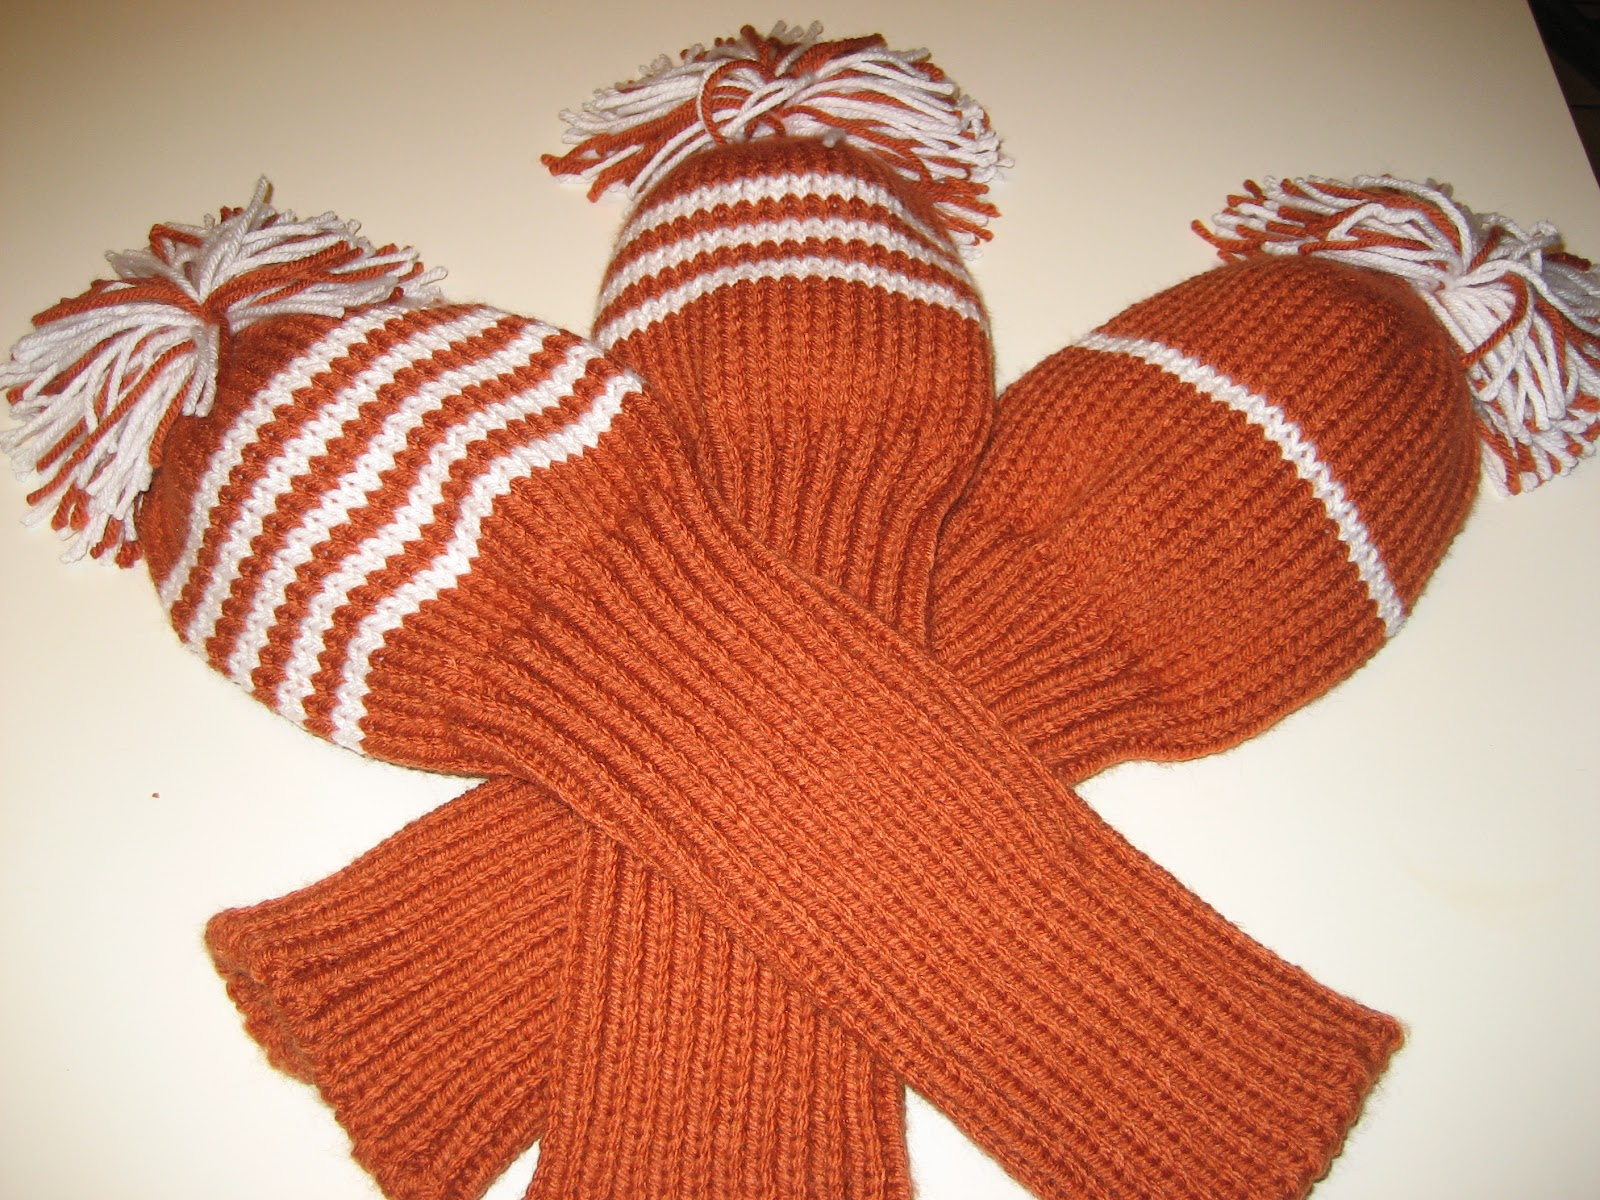 Diana Natters On About Machine Knitting Golf Club Covers